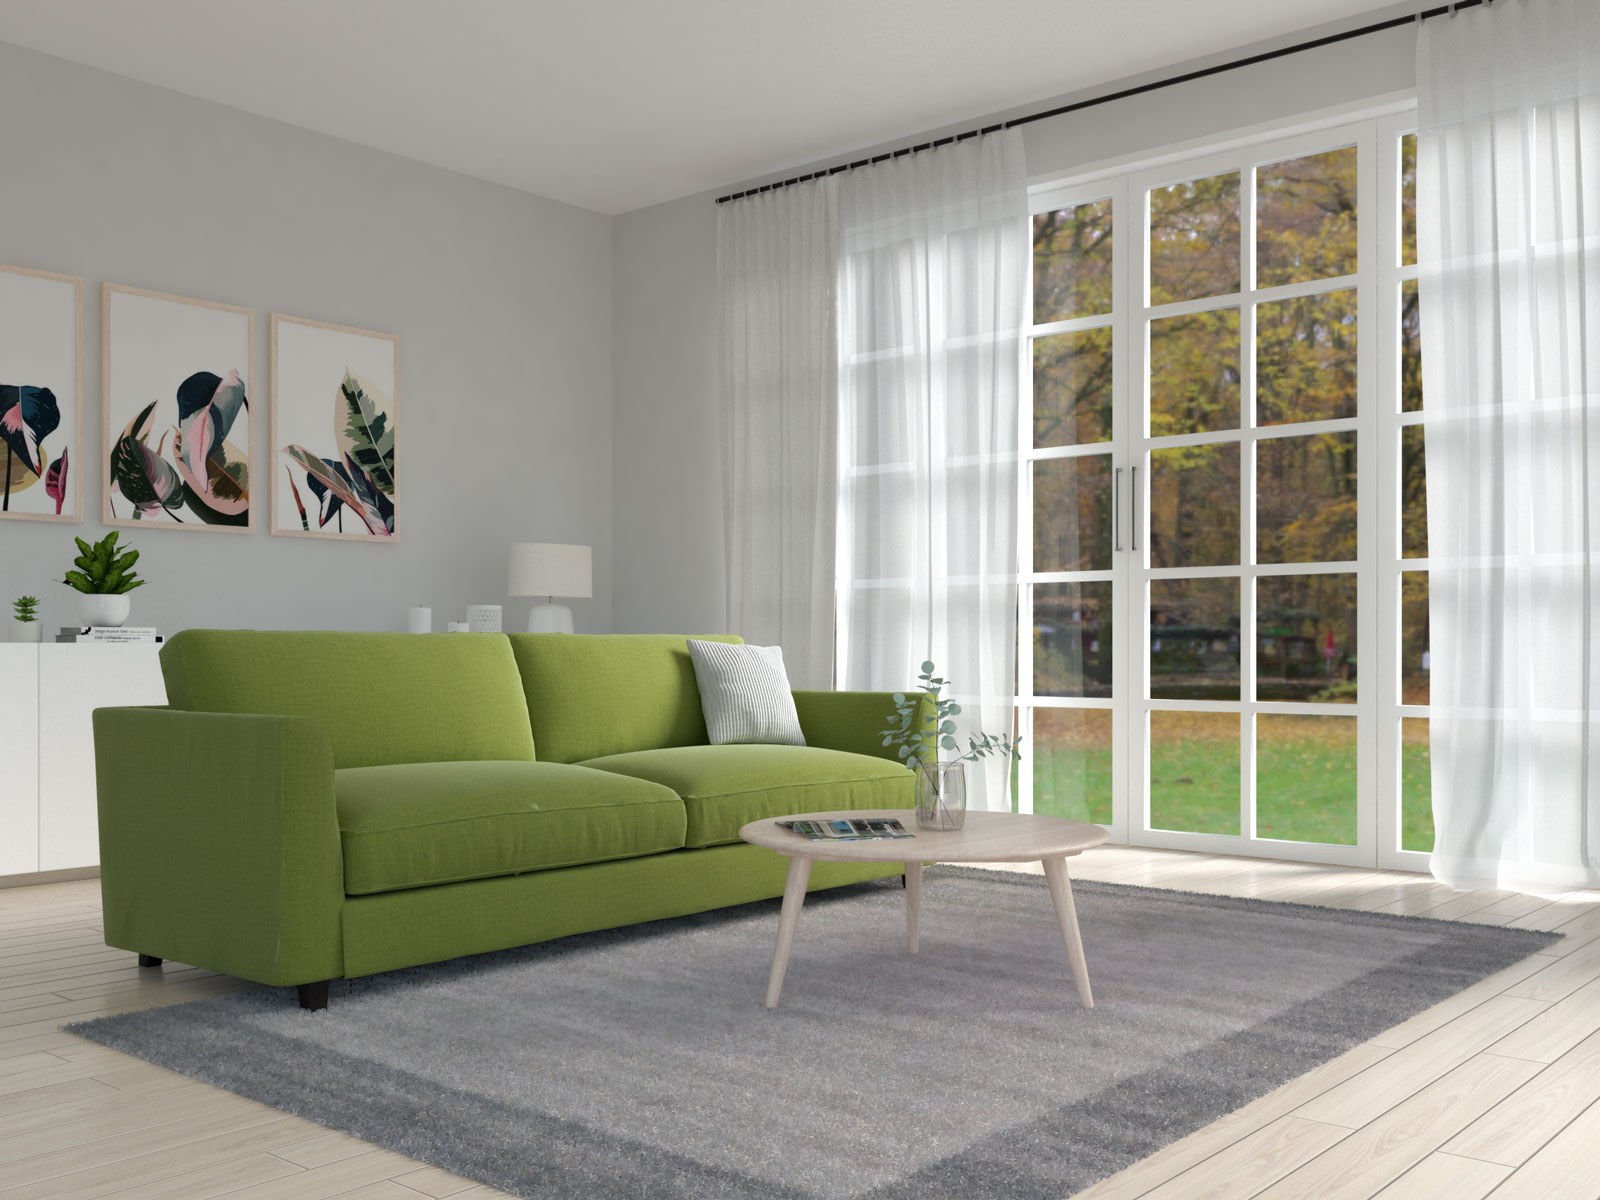 Olive green couch with gray area rug